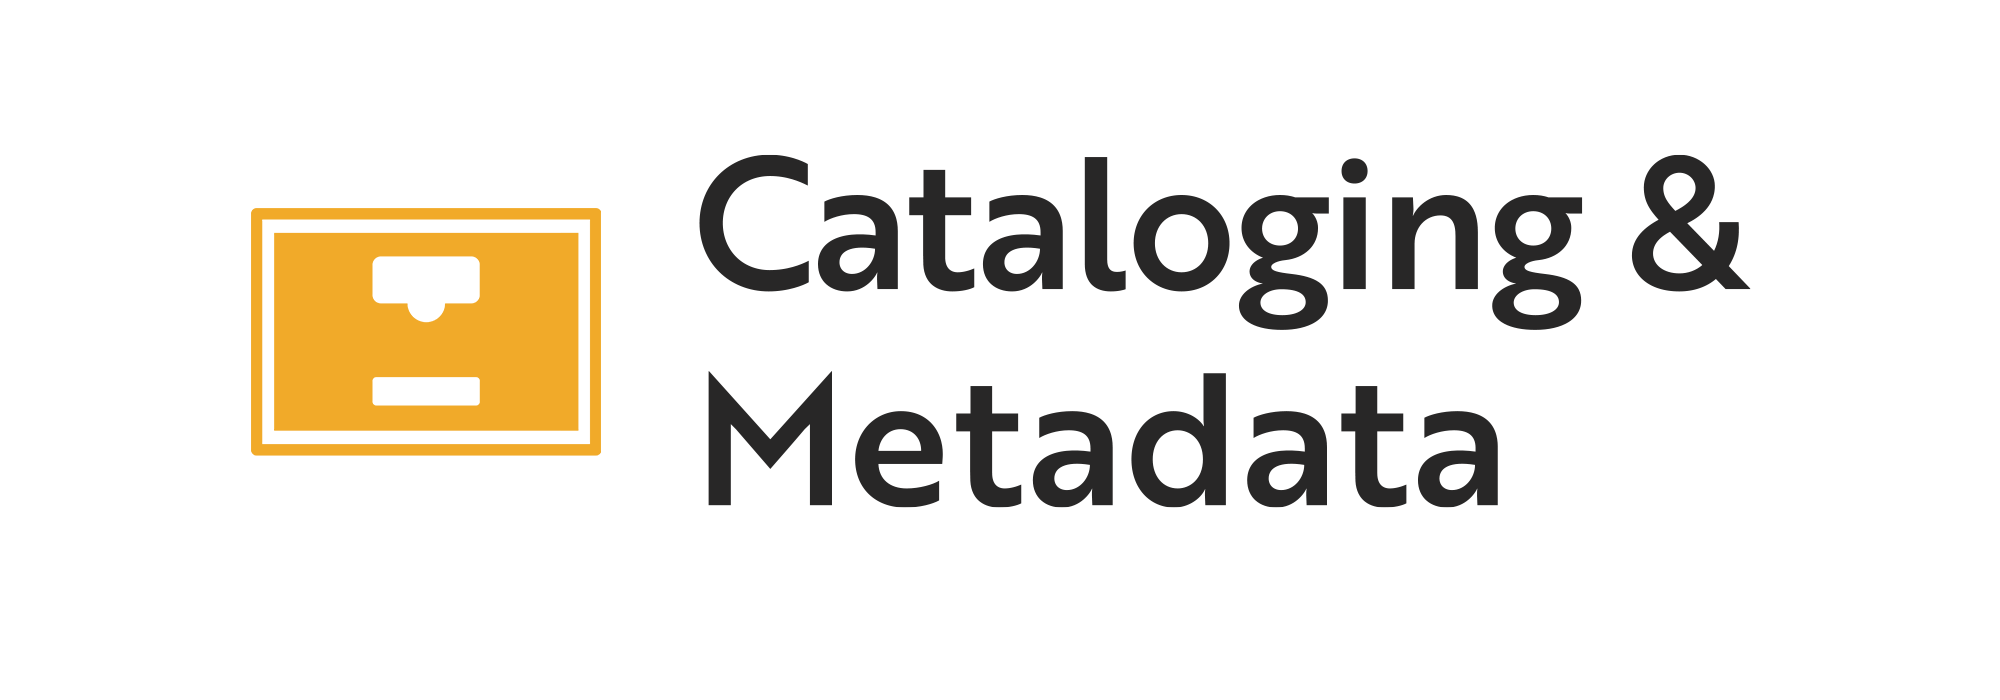 Cataloging & Metadata logo.